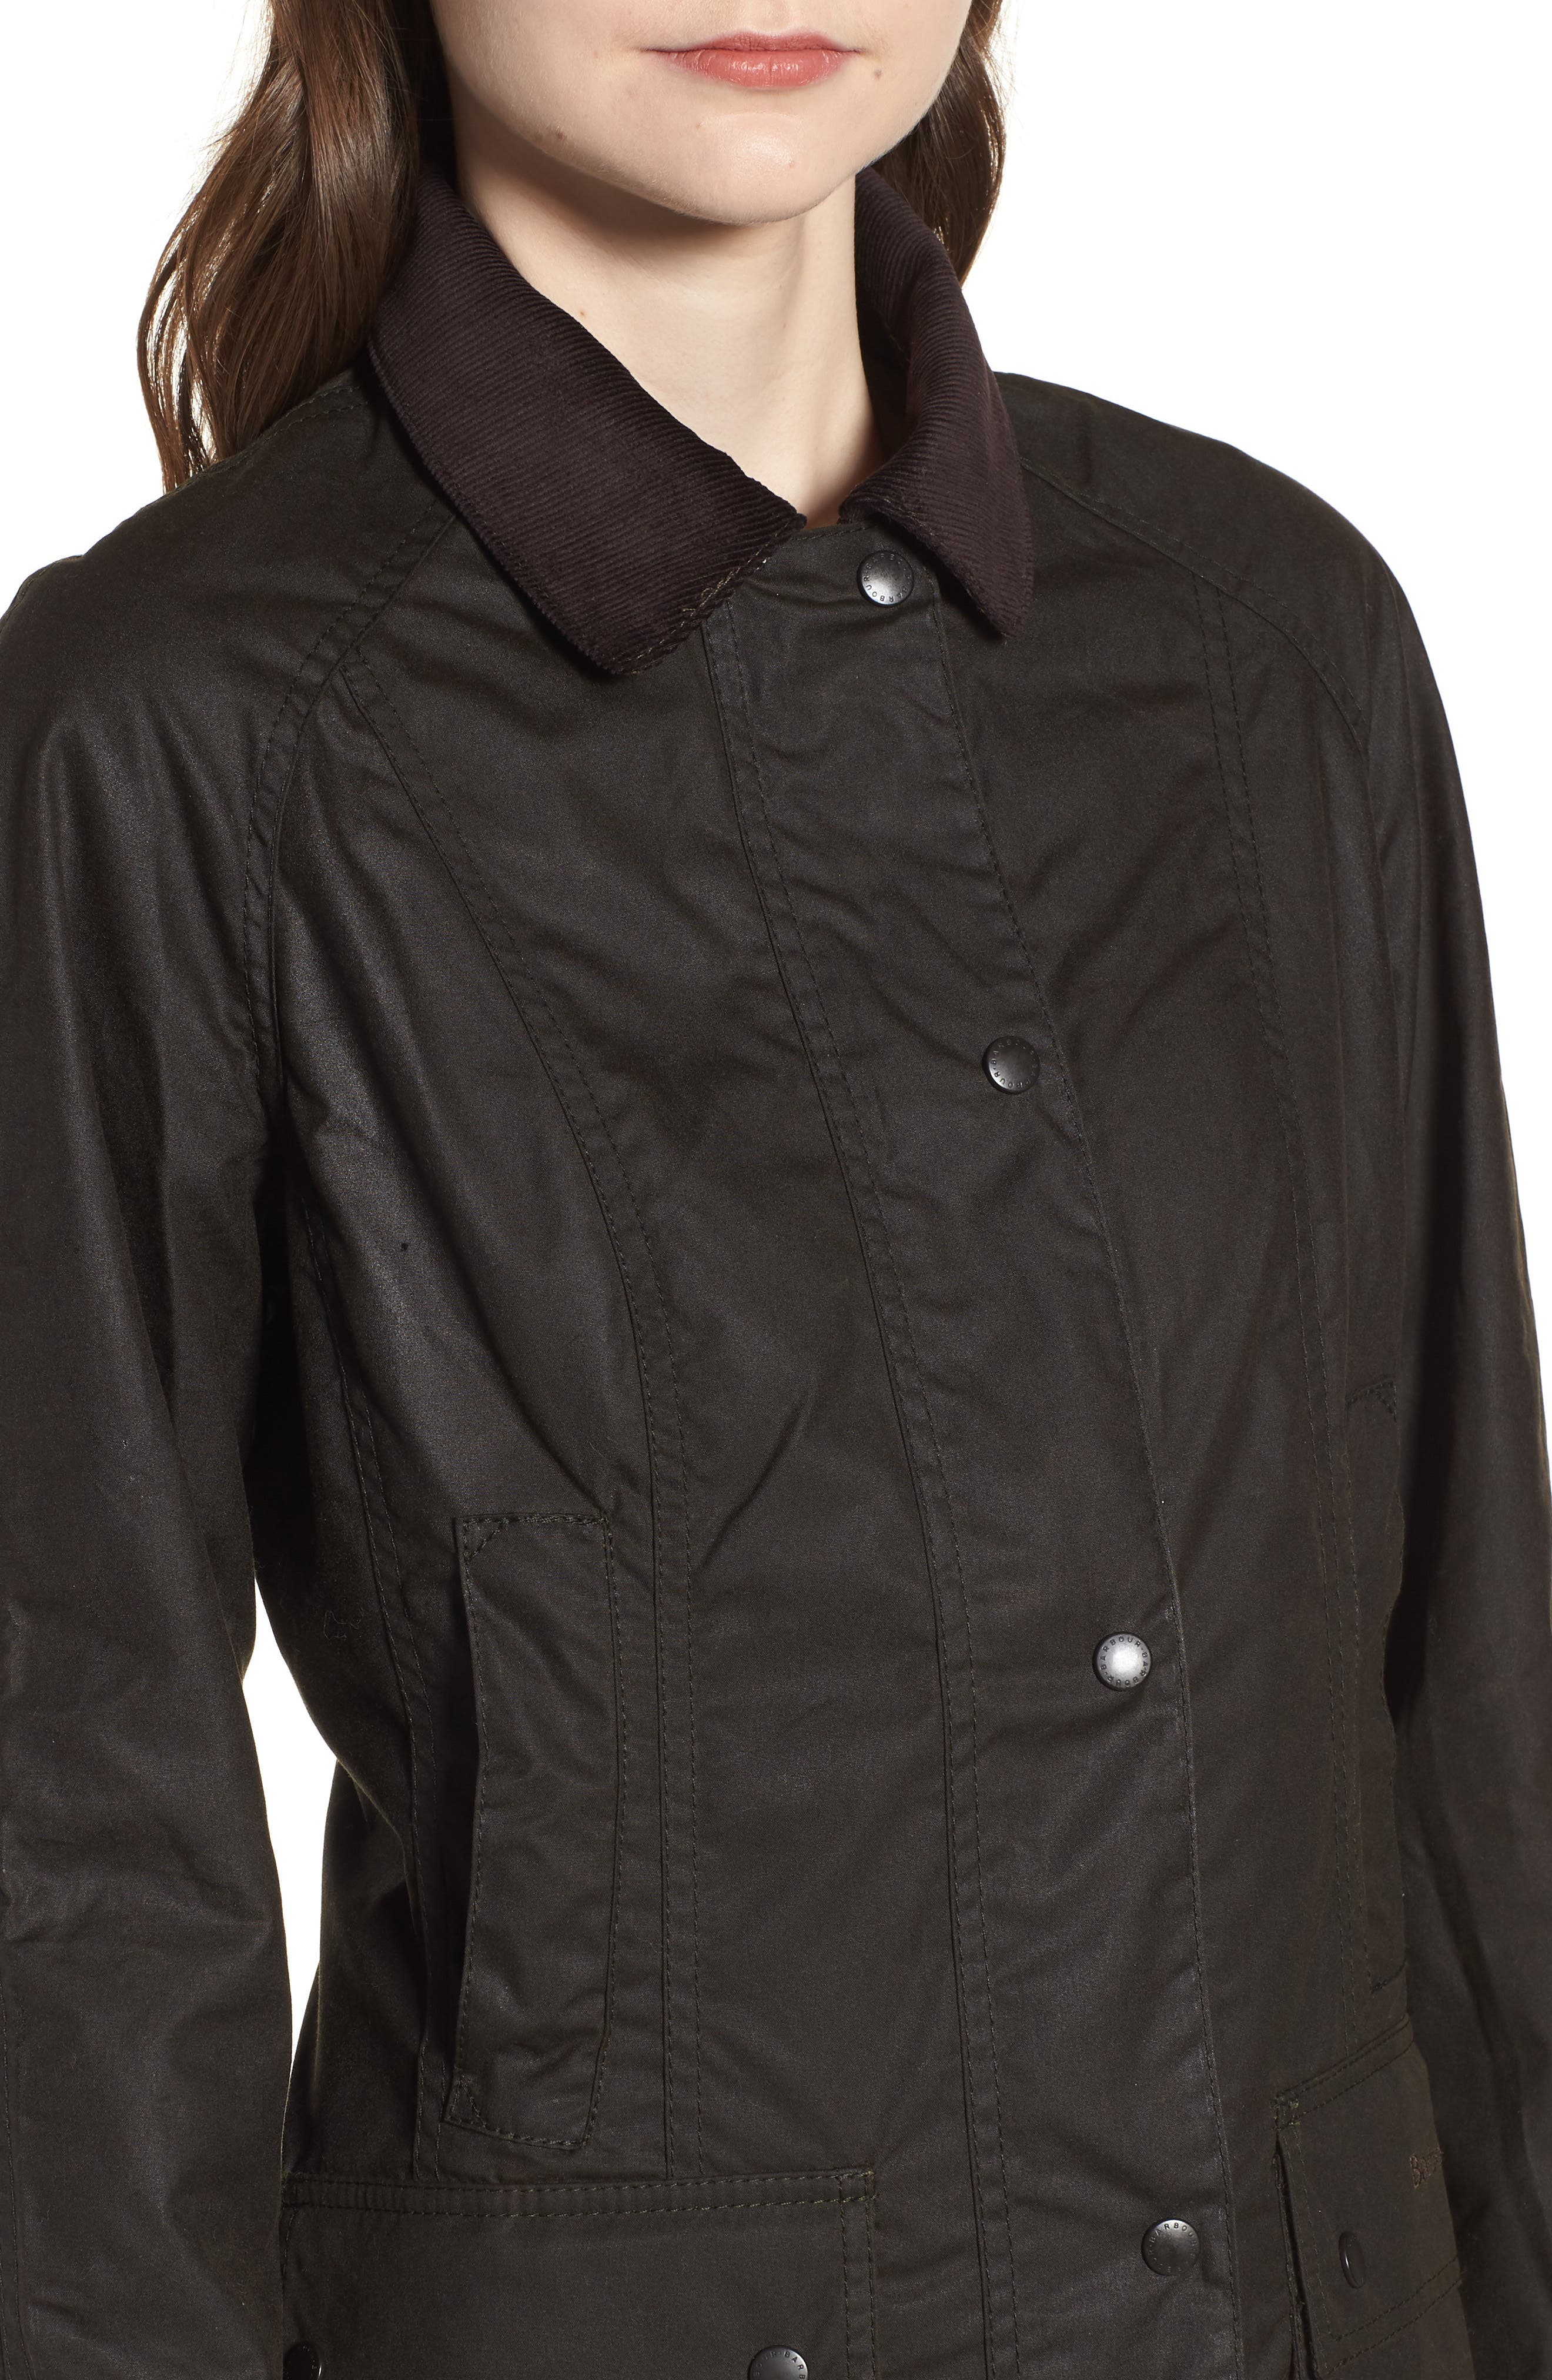 Beadnell Waxed Cotton Jacket,                             Alternate thumbnail 4, color,                             Olive